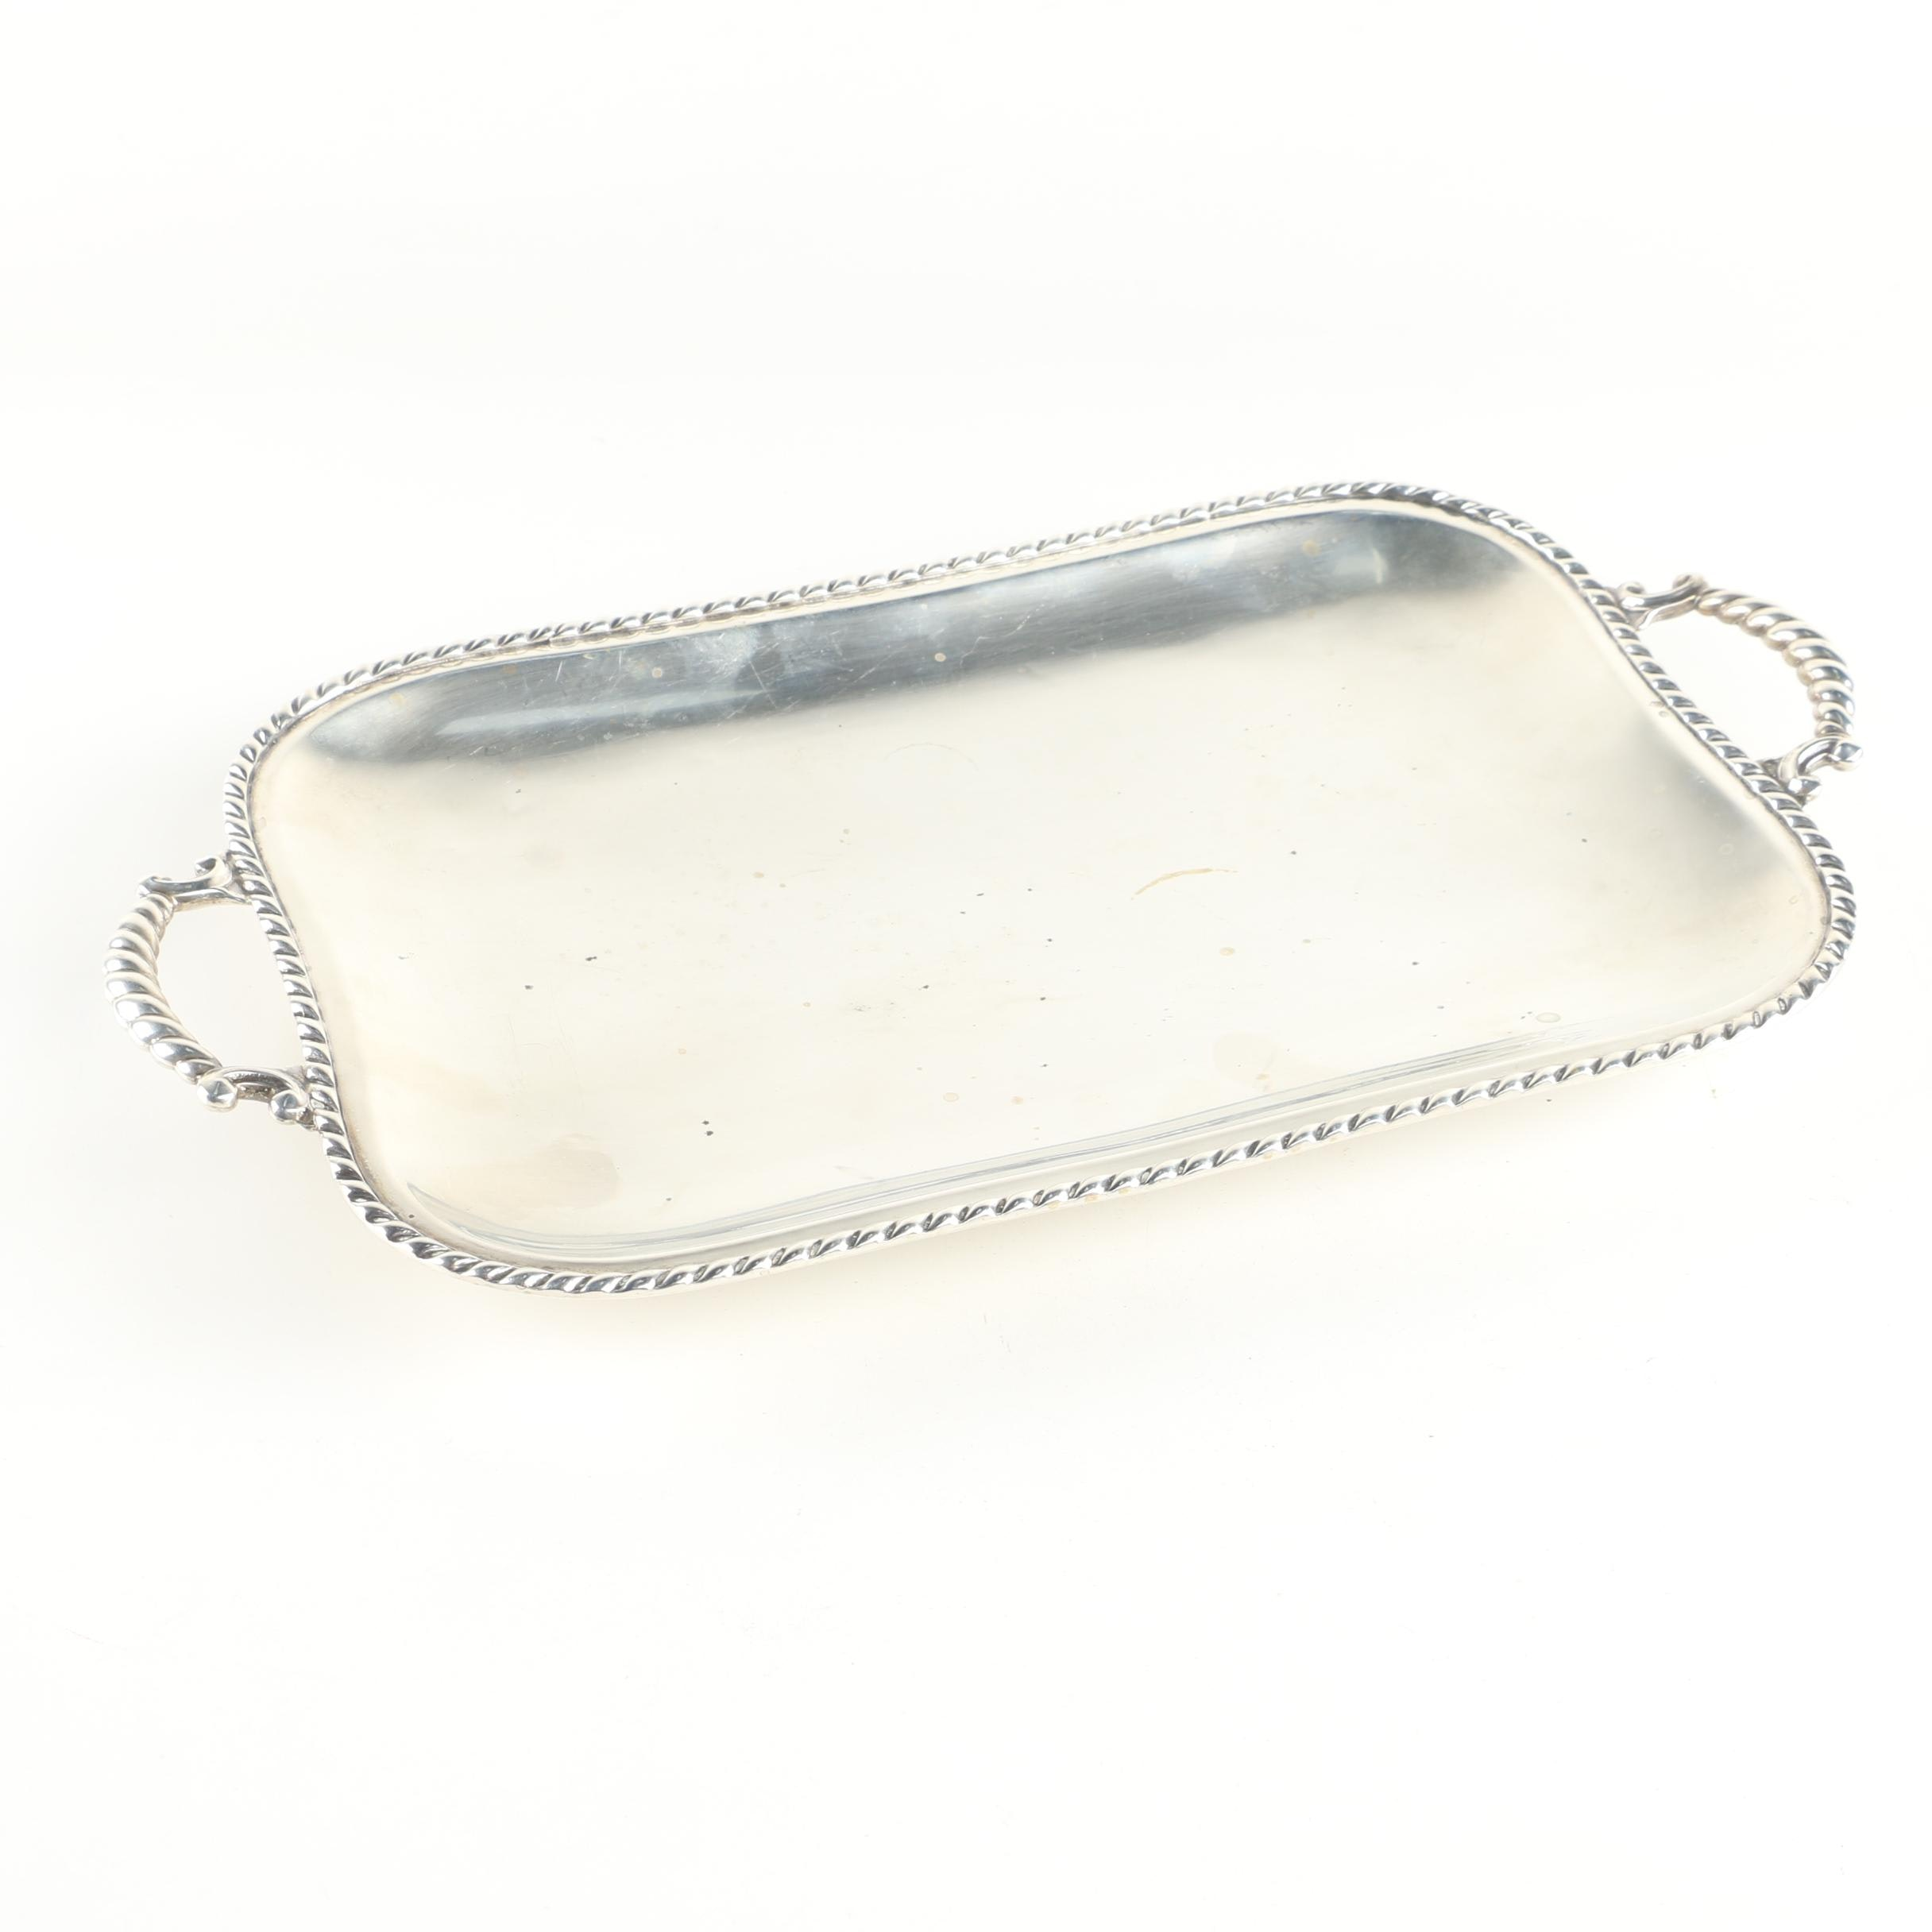 Alfredo Montejo Spanish 915 Silver Serving Tray with Gadrooning Trim